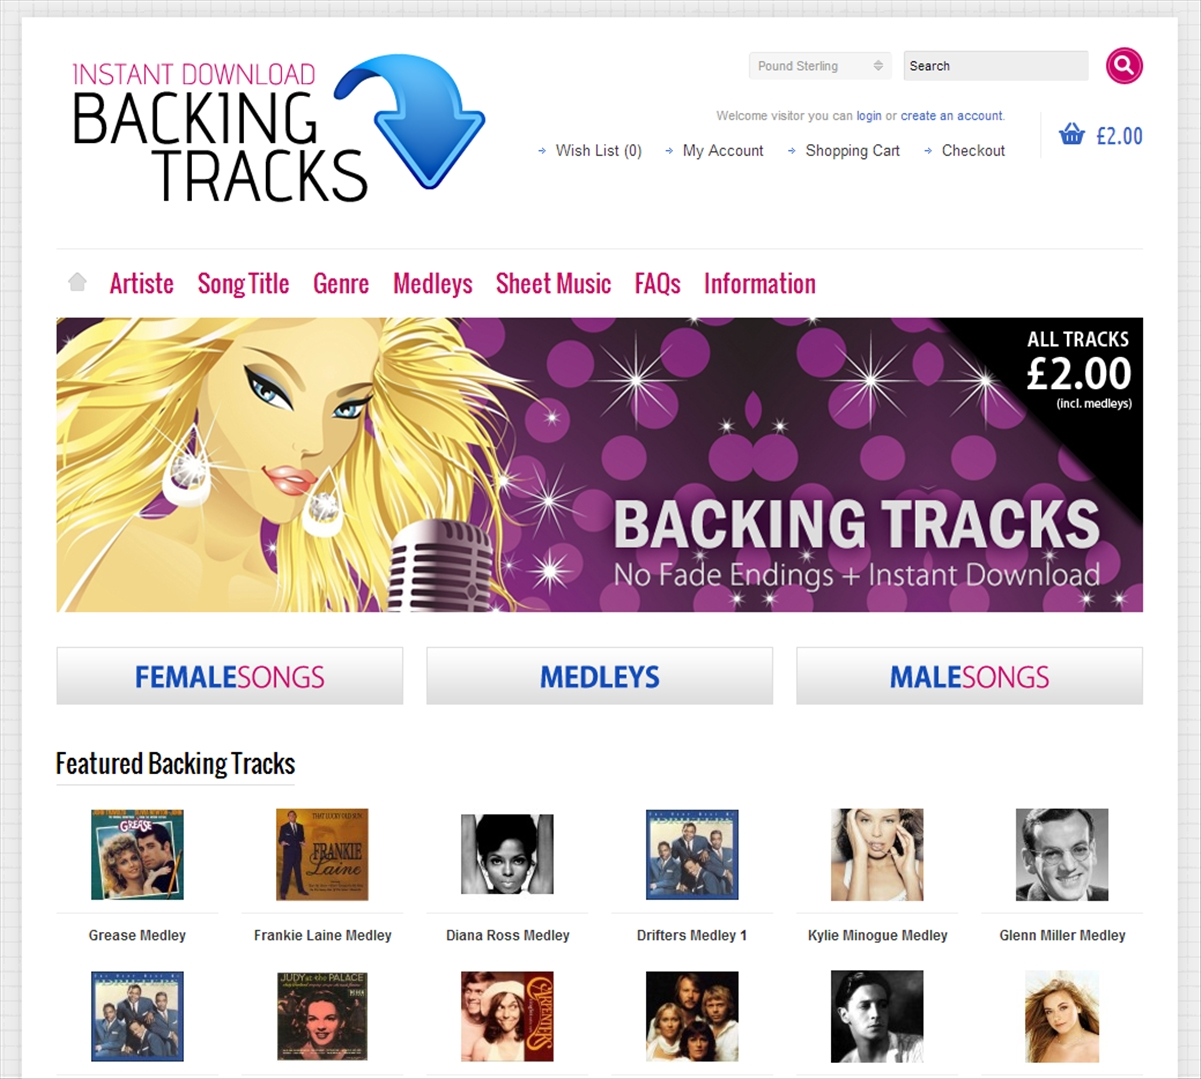 Instant Download Backing Tracks by OneTwo Web Solutions